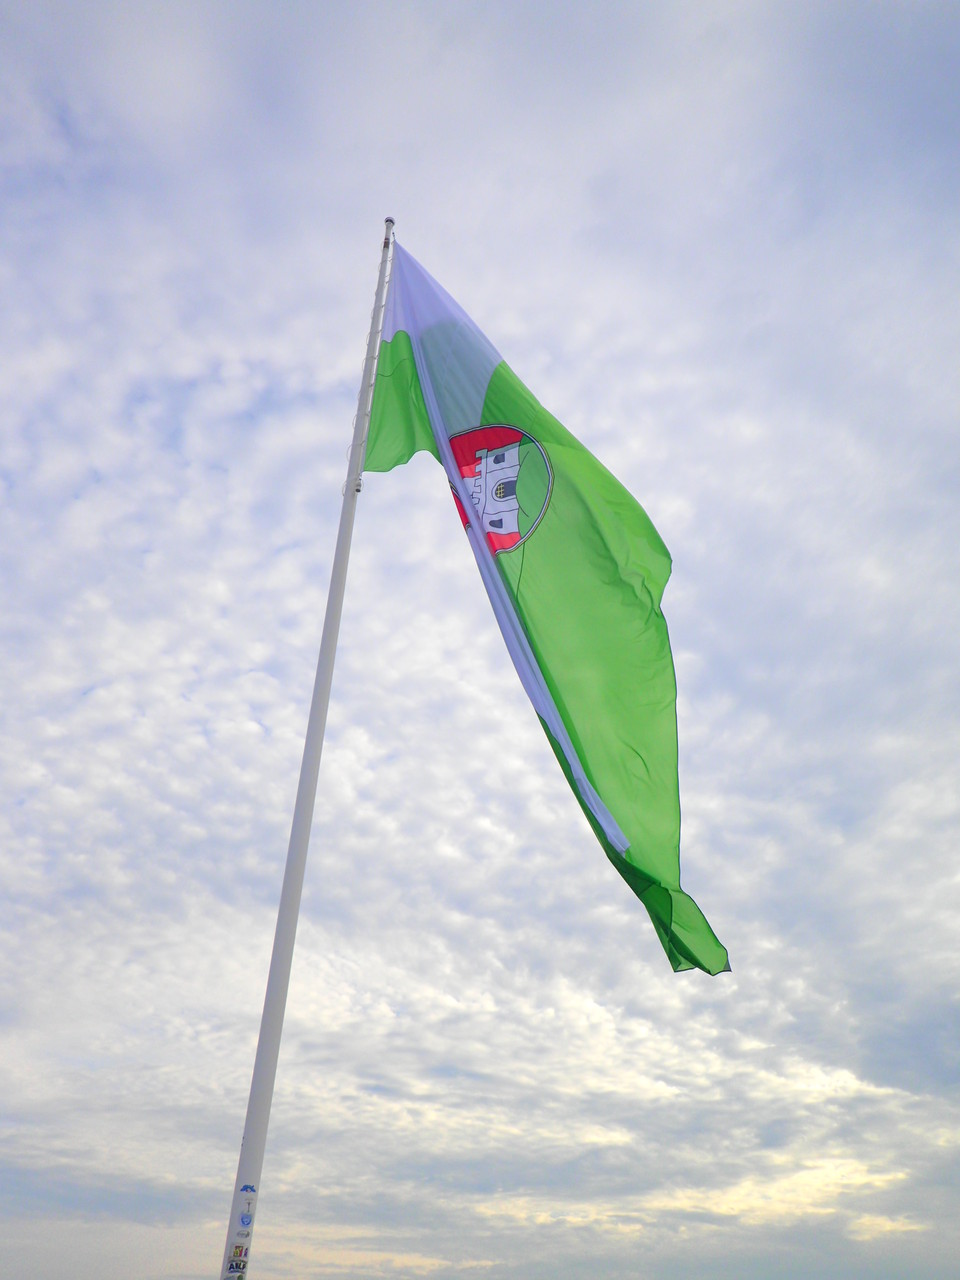 Ljubljana's city flag